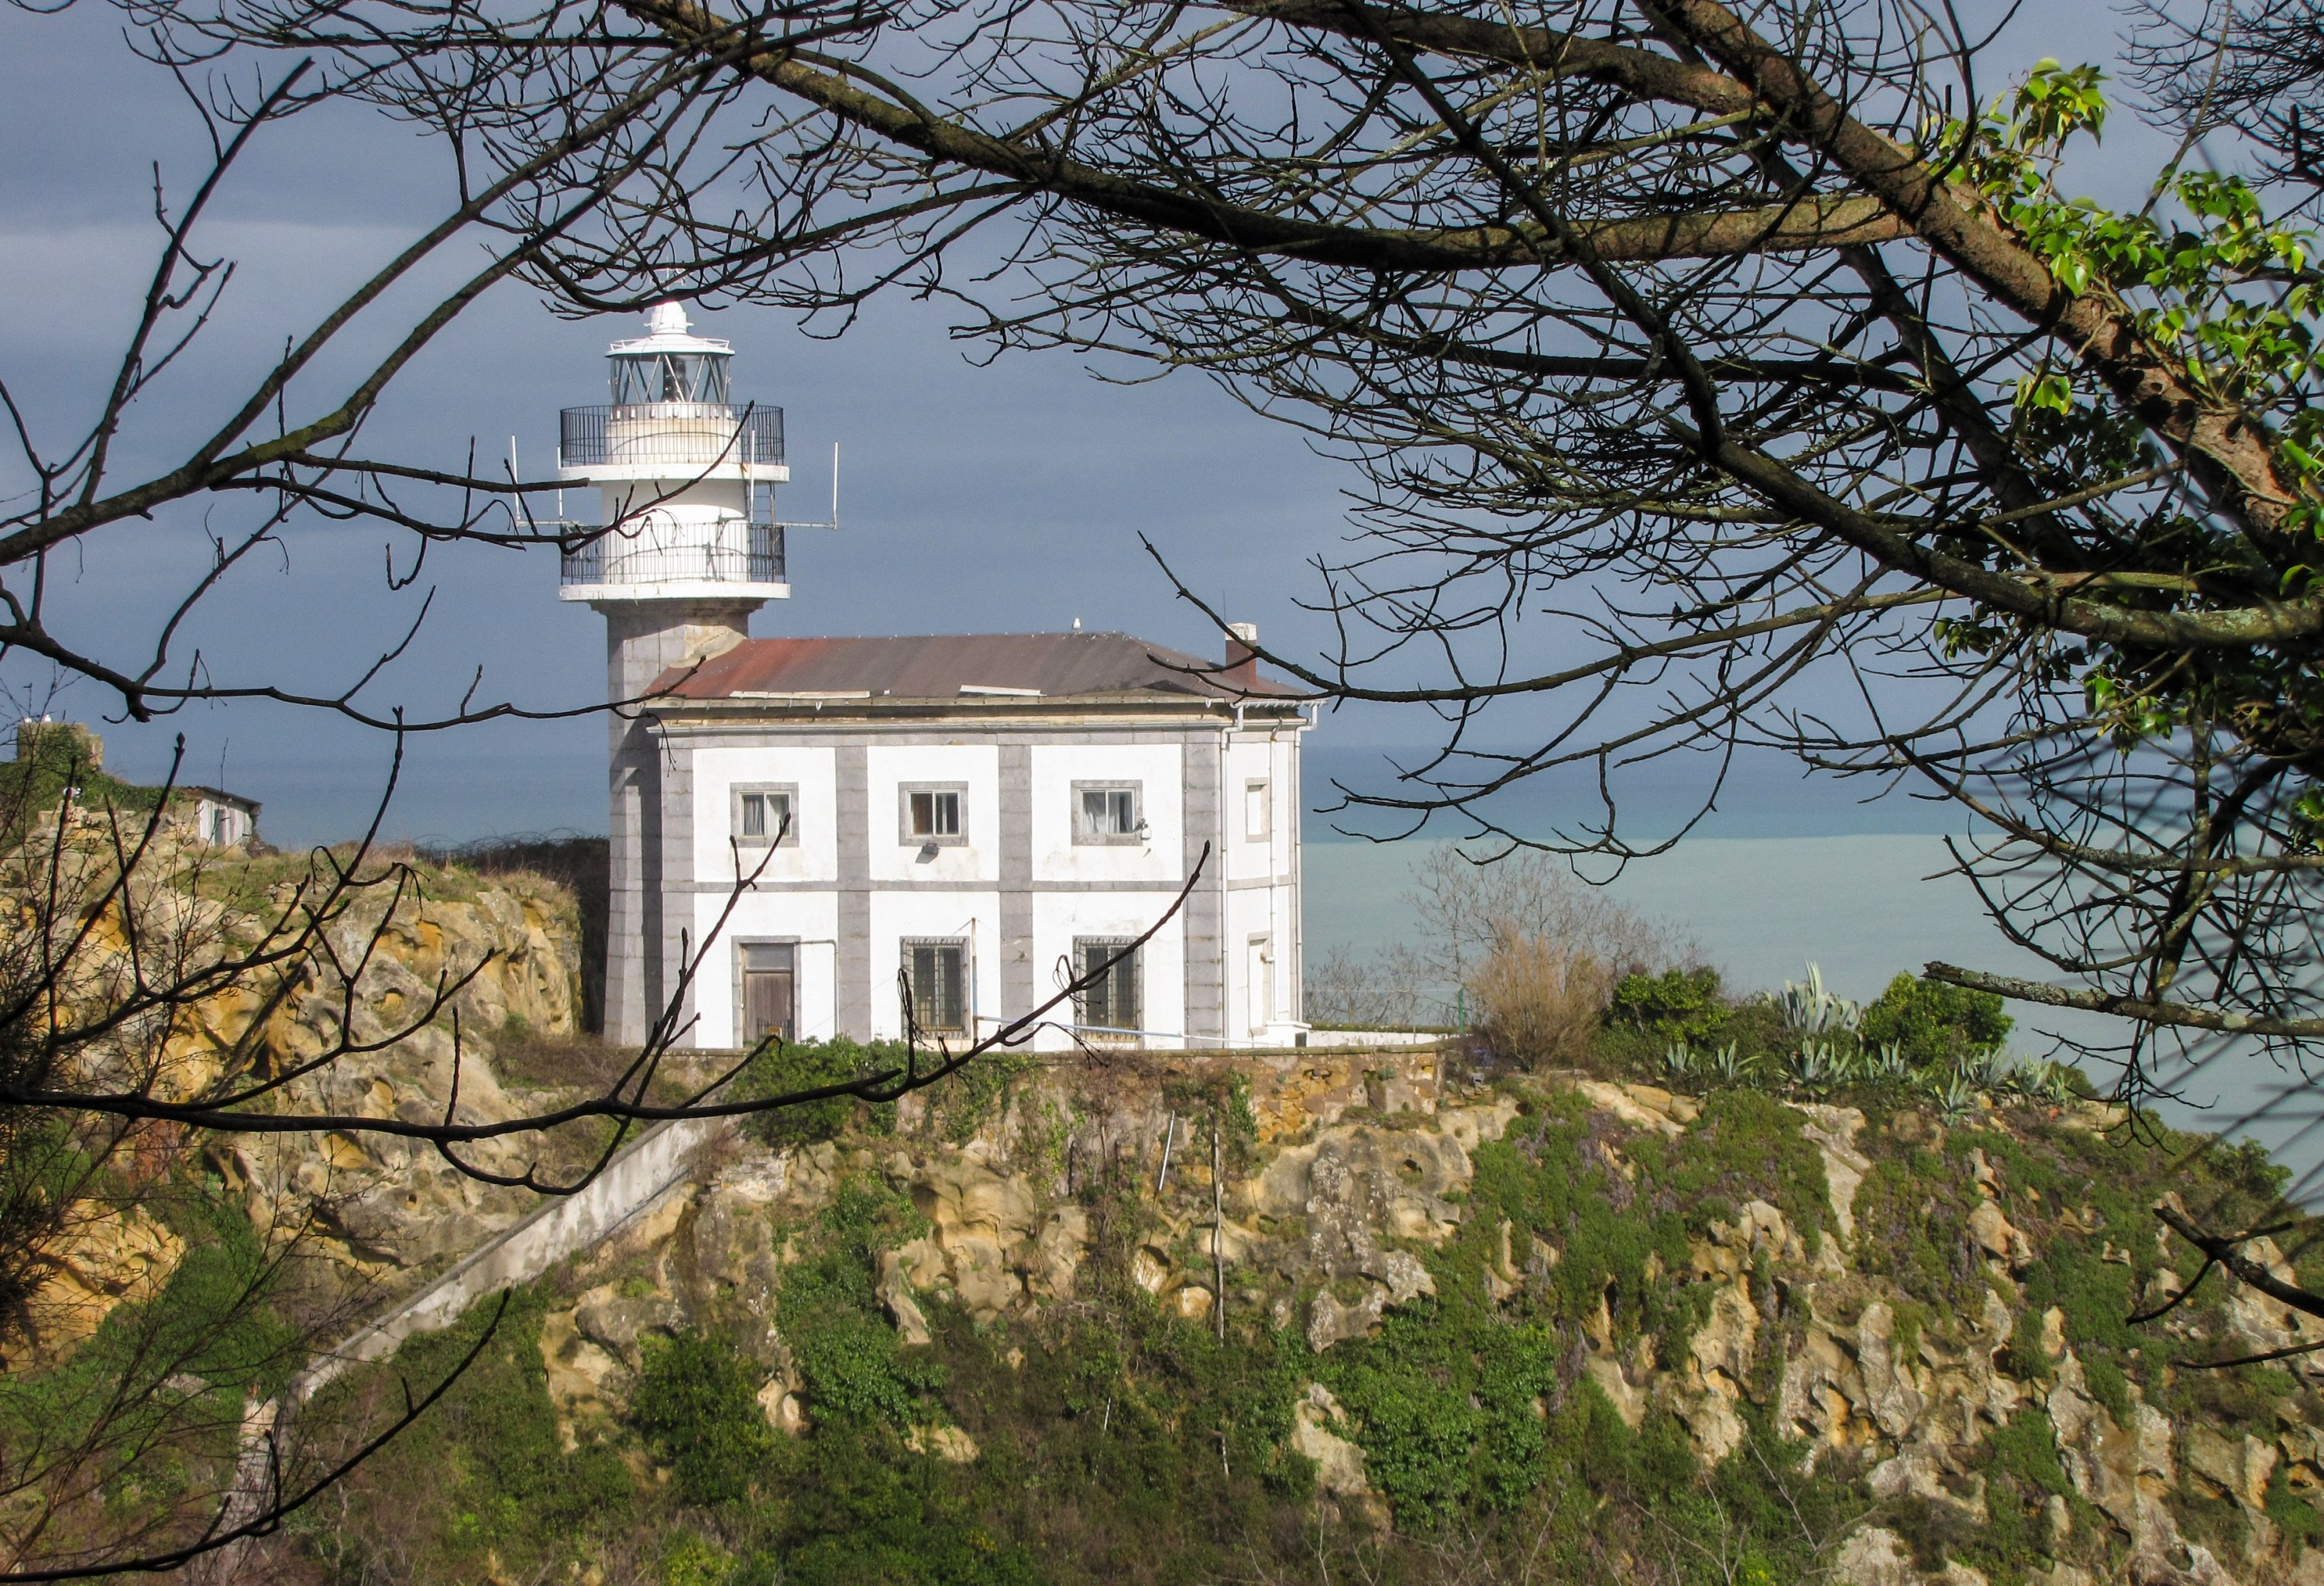 Getaria's El Raton, or 'Mouse Rock,' is the lighthouse-topped colossus towering above the wild coast that takes its name from its rodent-like shape. (DPA Photo)